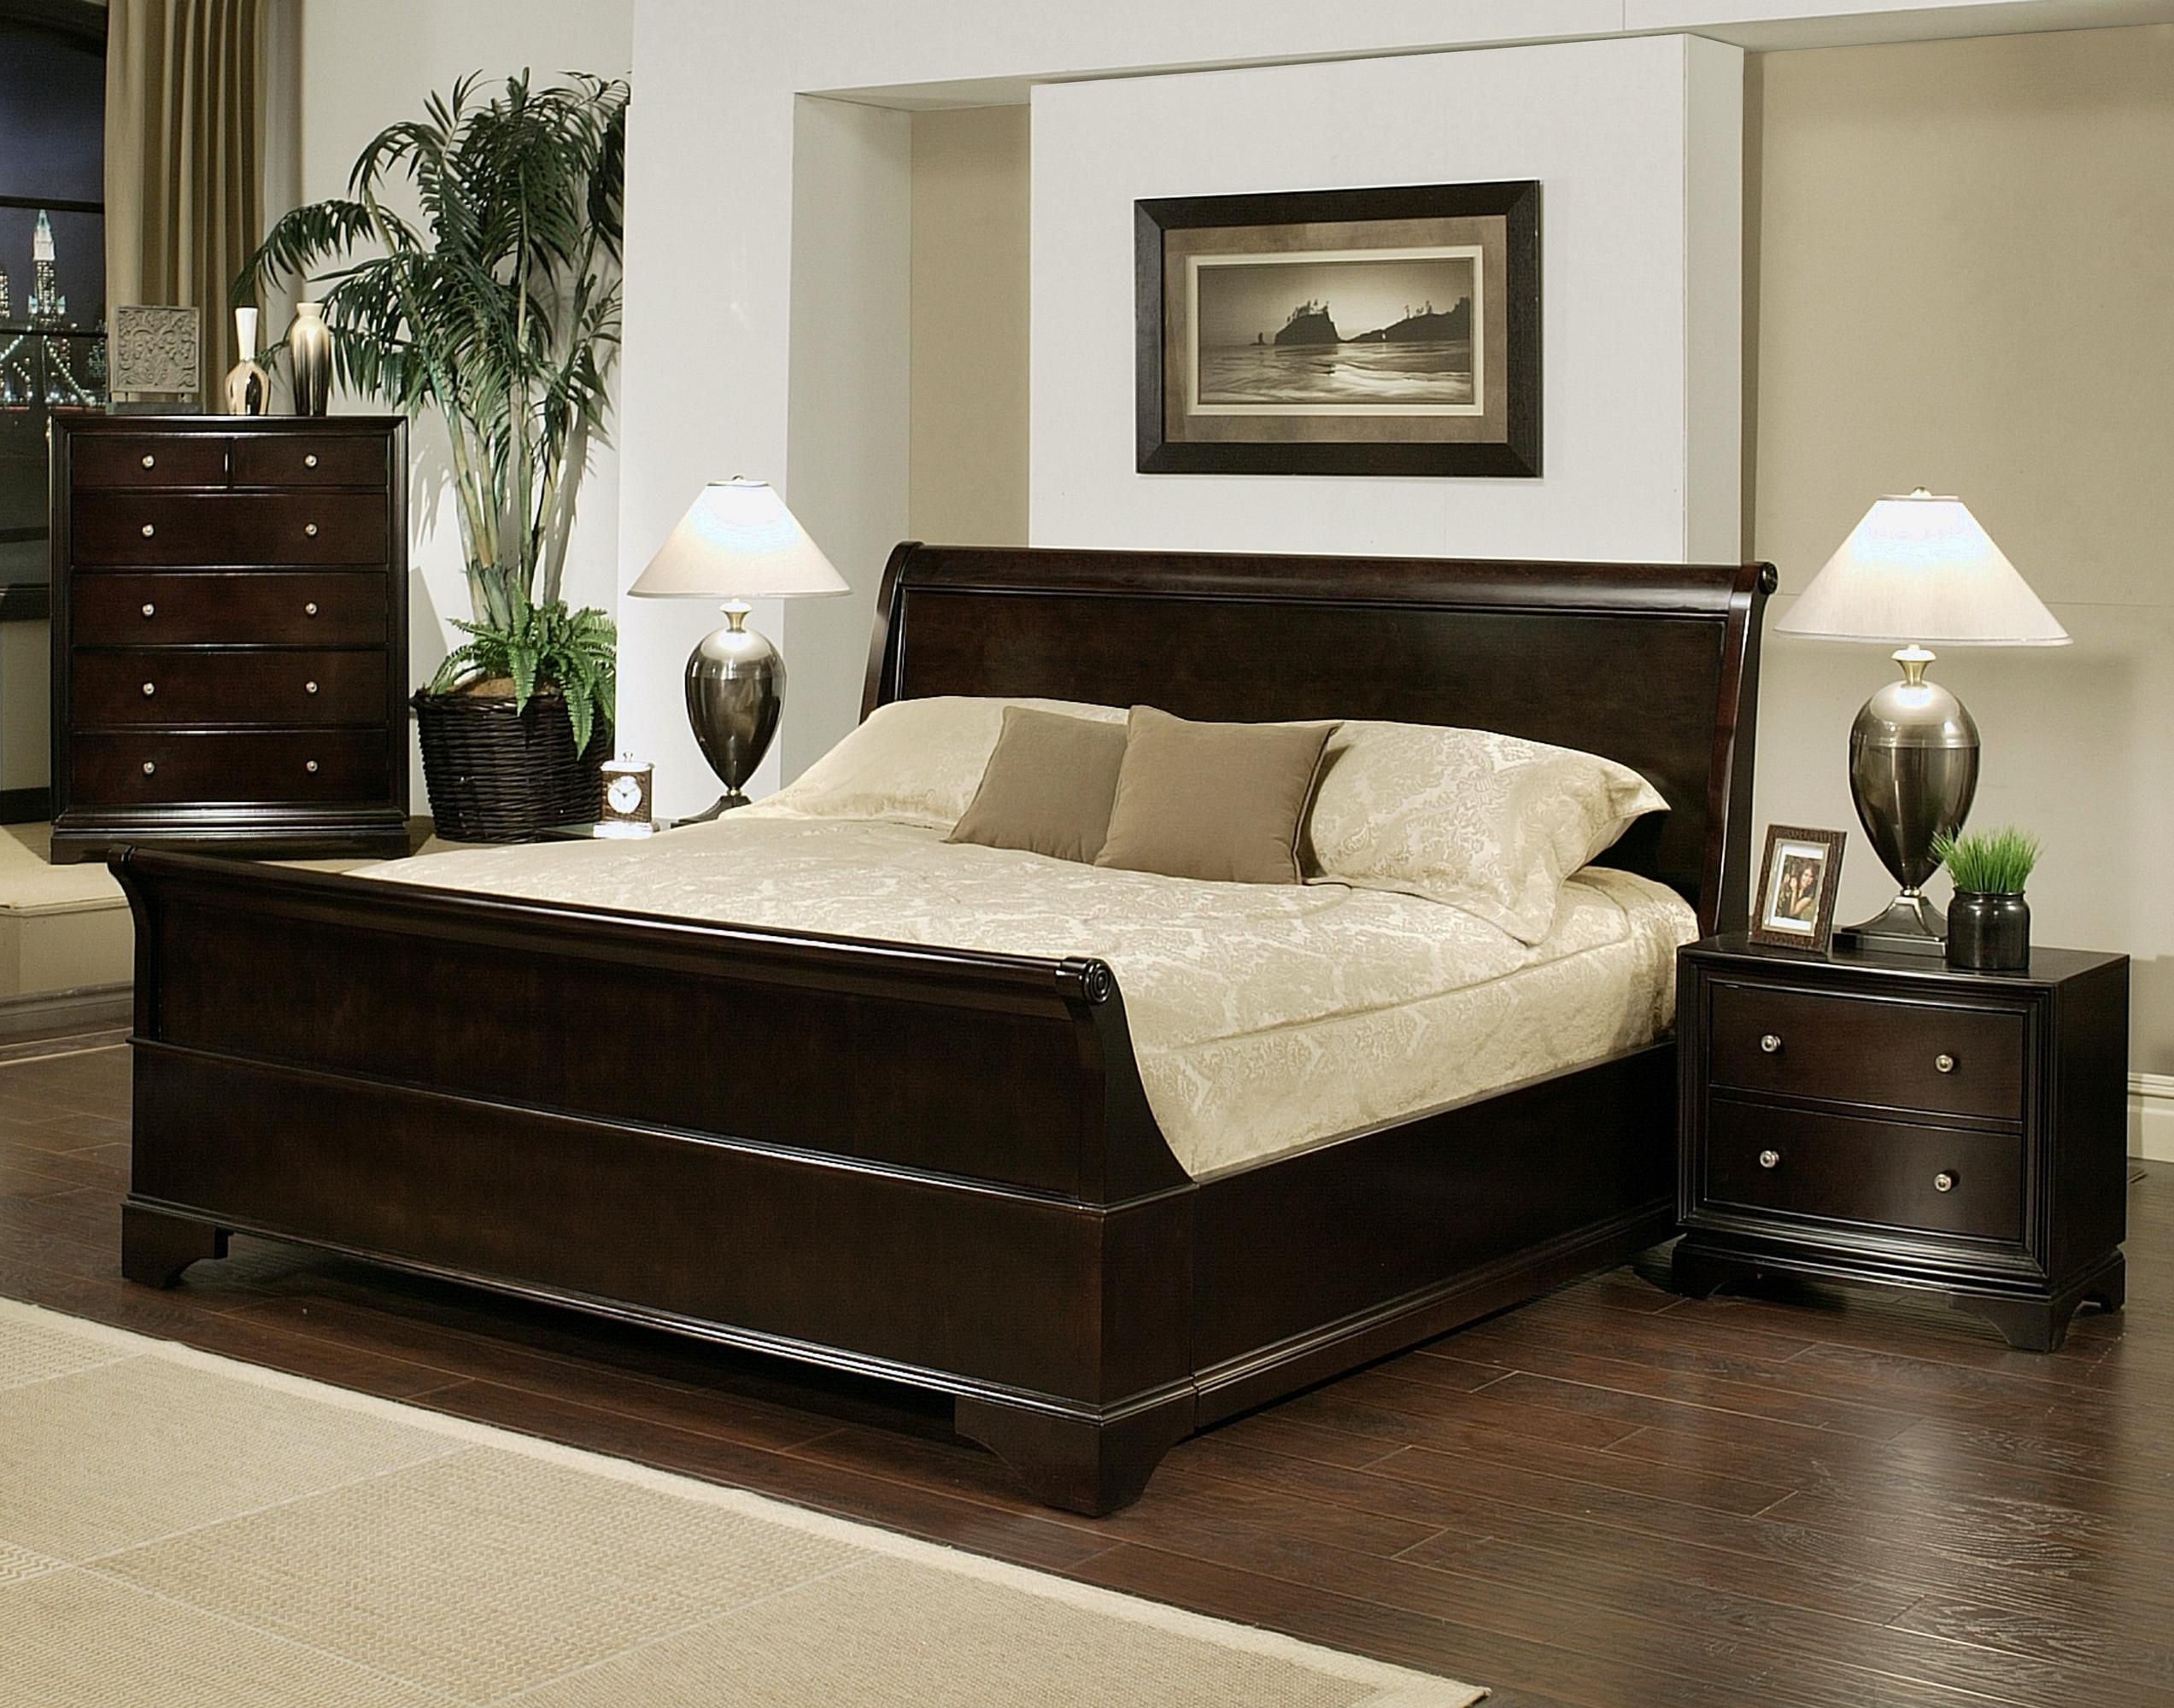 abbyson sleigh cal king bed set with 4 cushion and nightstand set